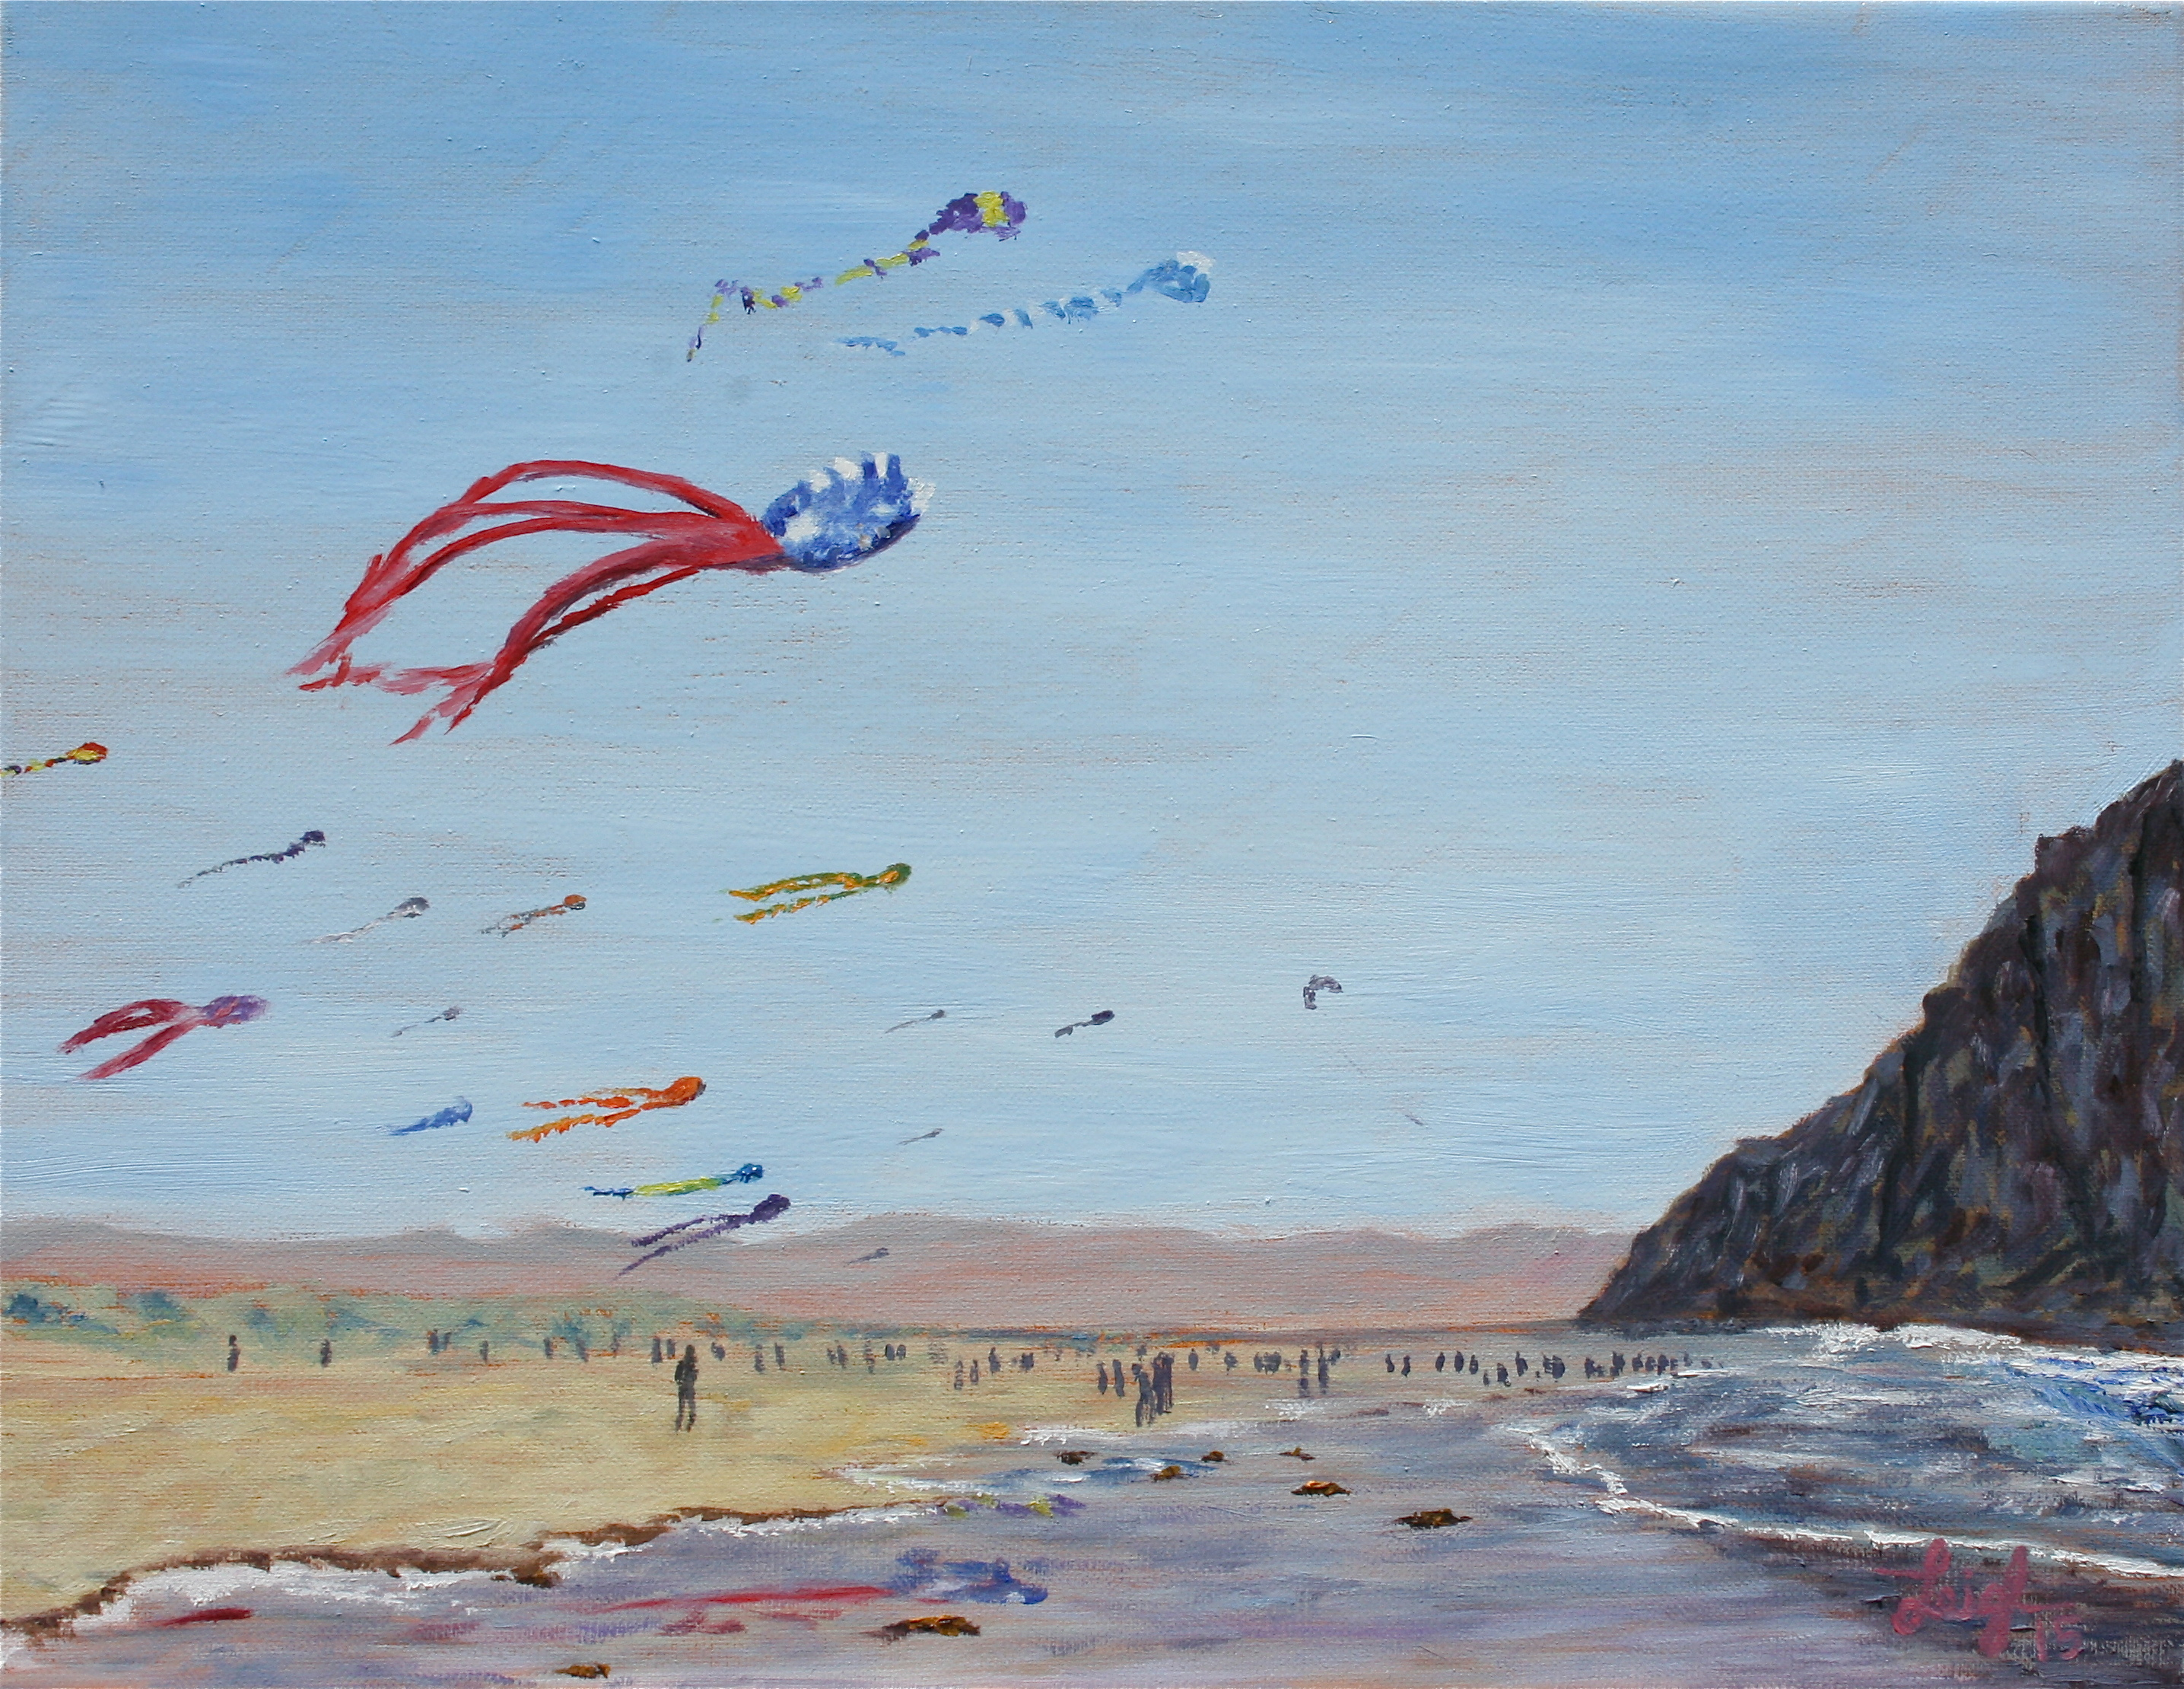 Kite Festival in Morro Bay  ~   Anne Edwards, La Verne, CA  2015  •  18 x 14